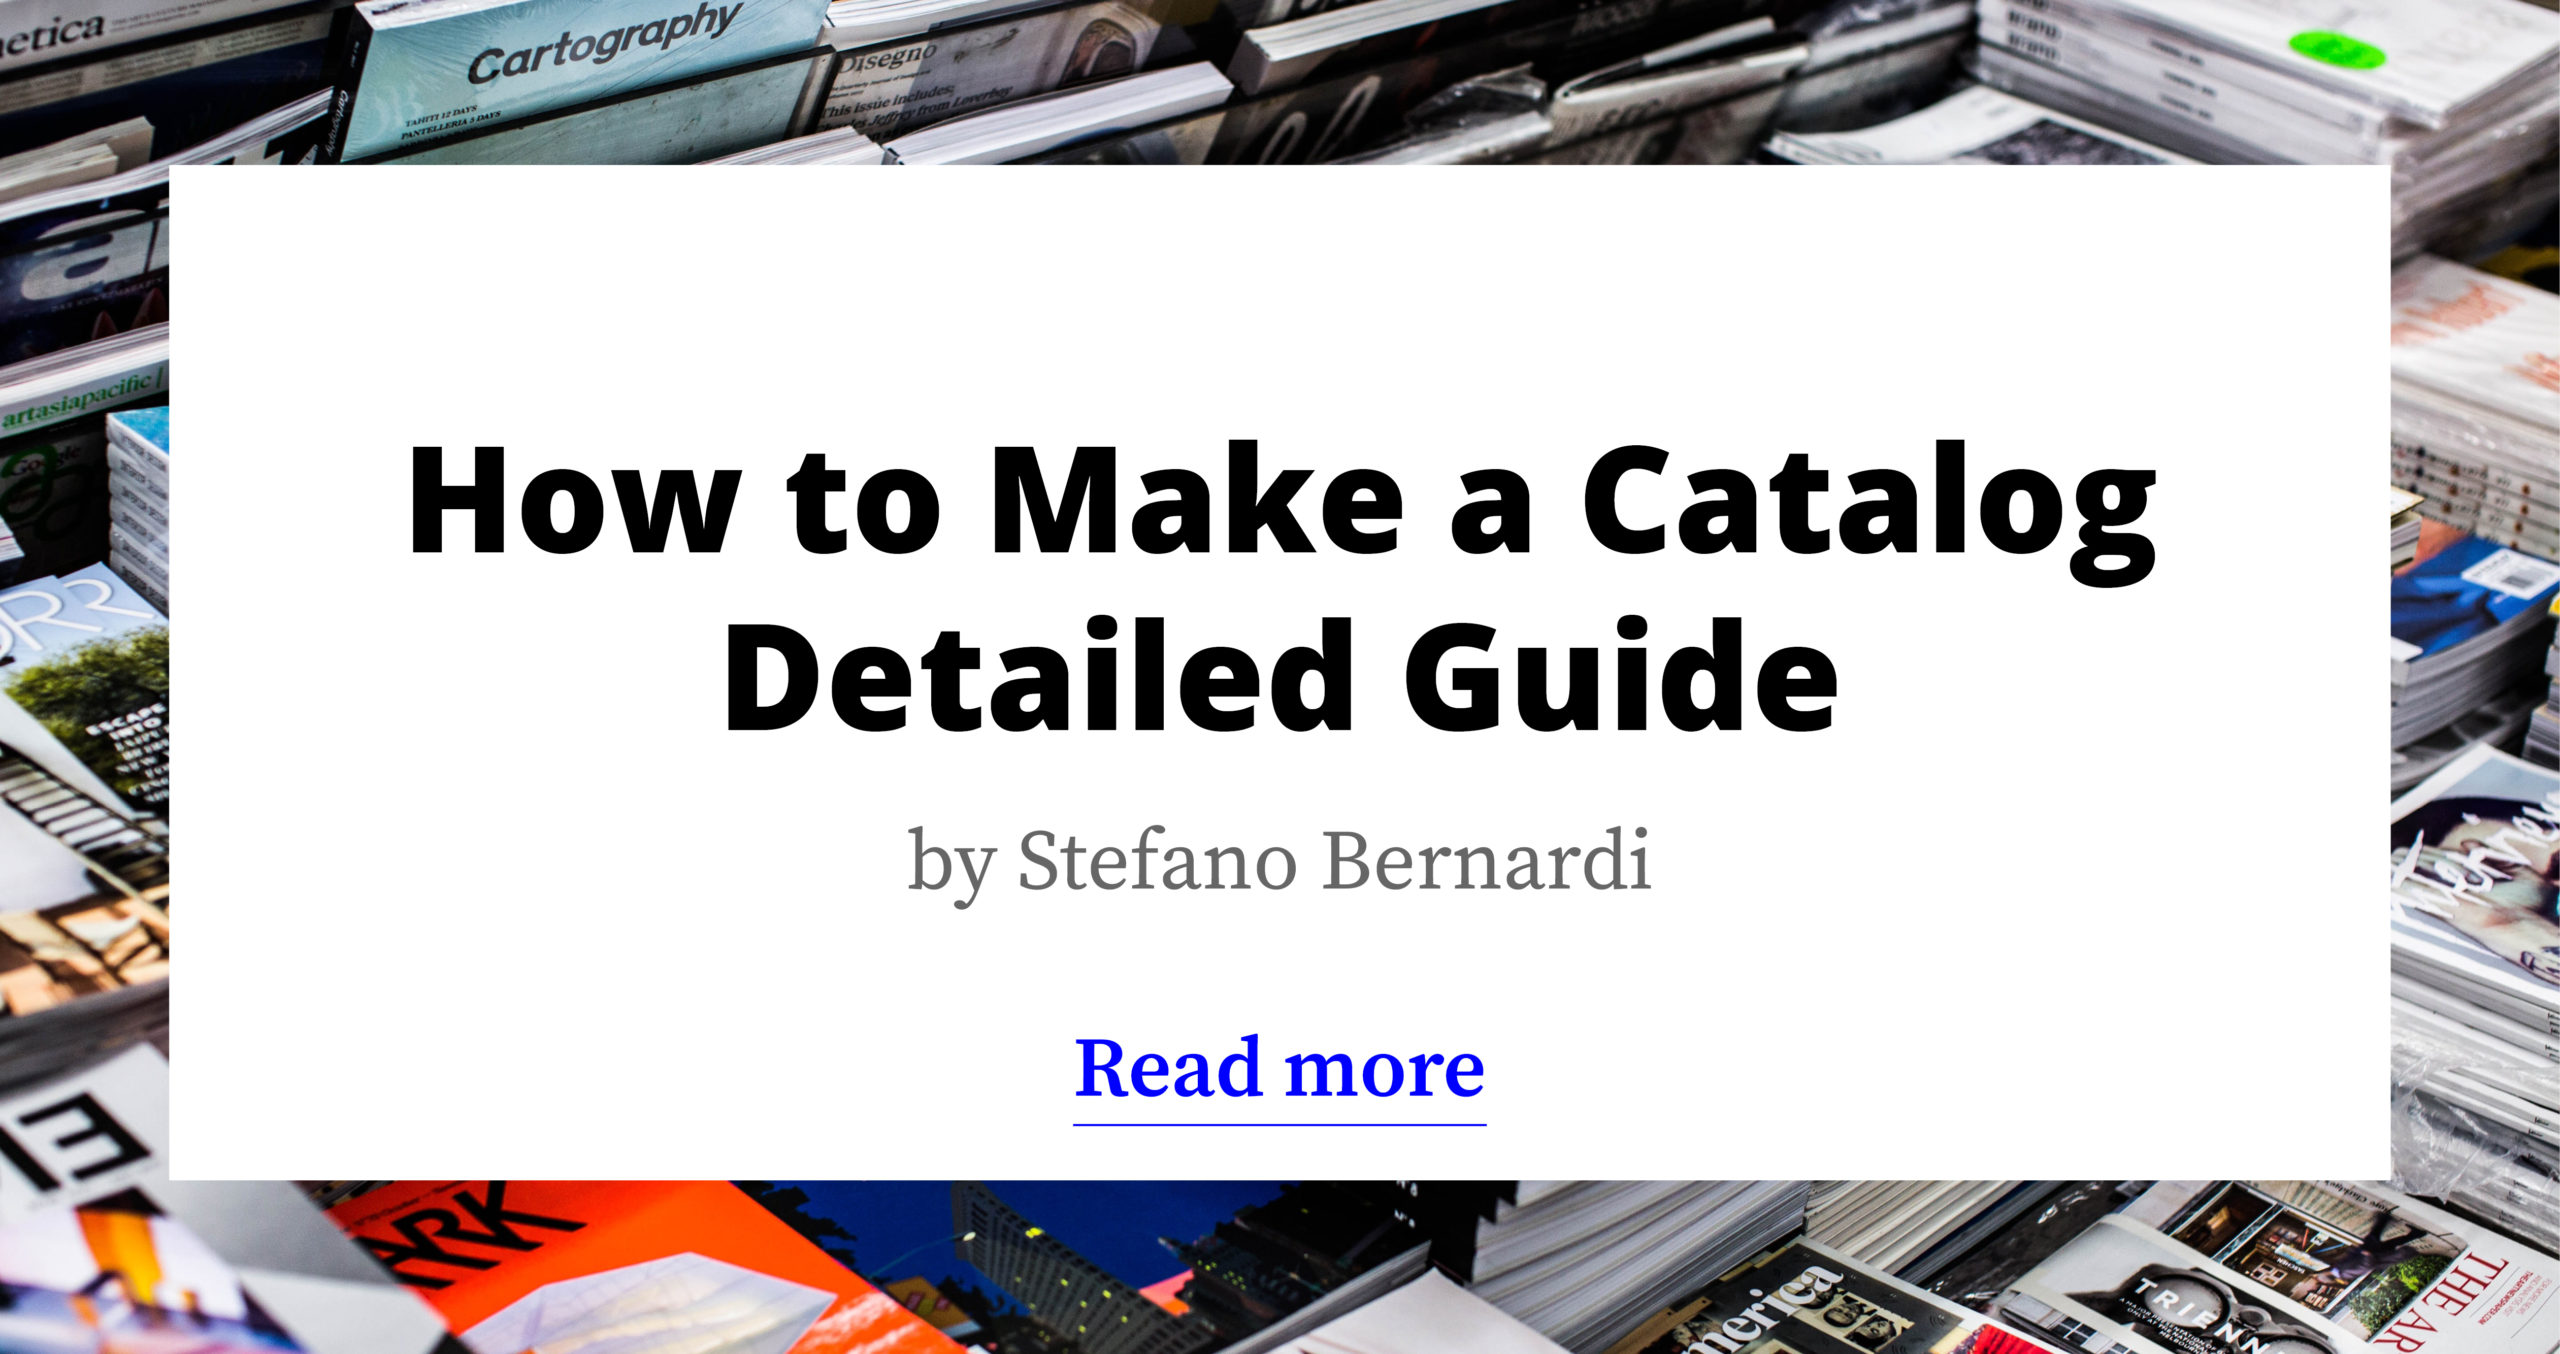 How to Make a Catalog - Detailed Guide